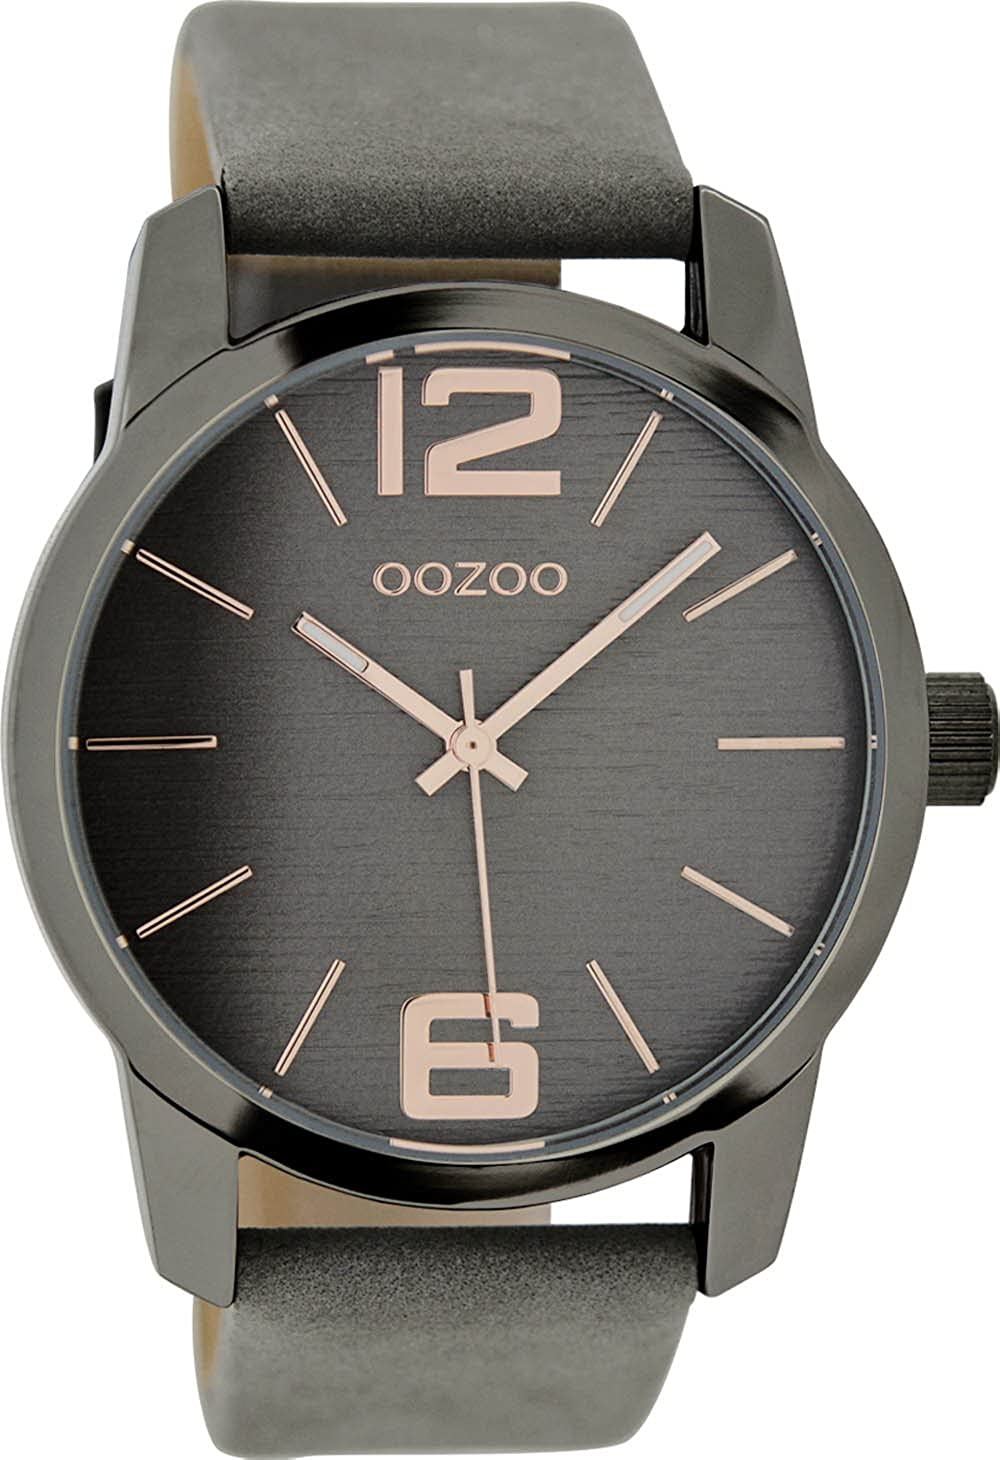 Oozoo women s watch with leather strap c4426f36502